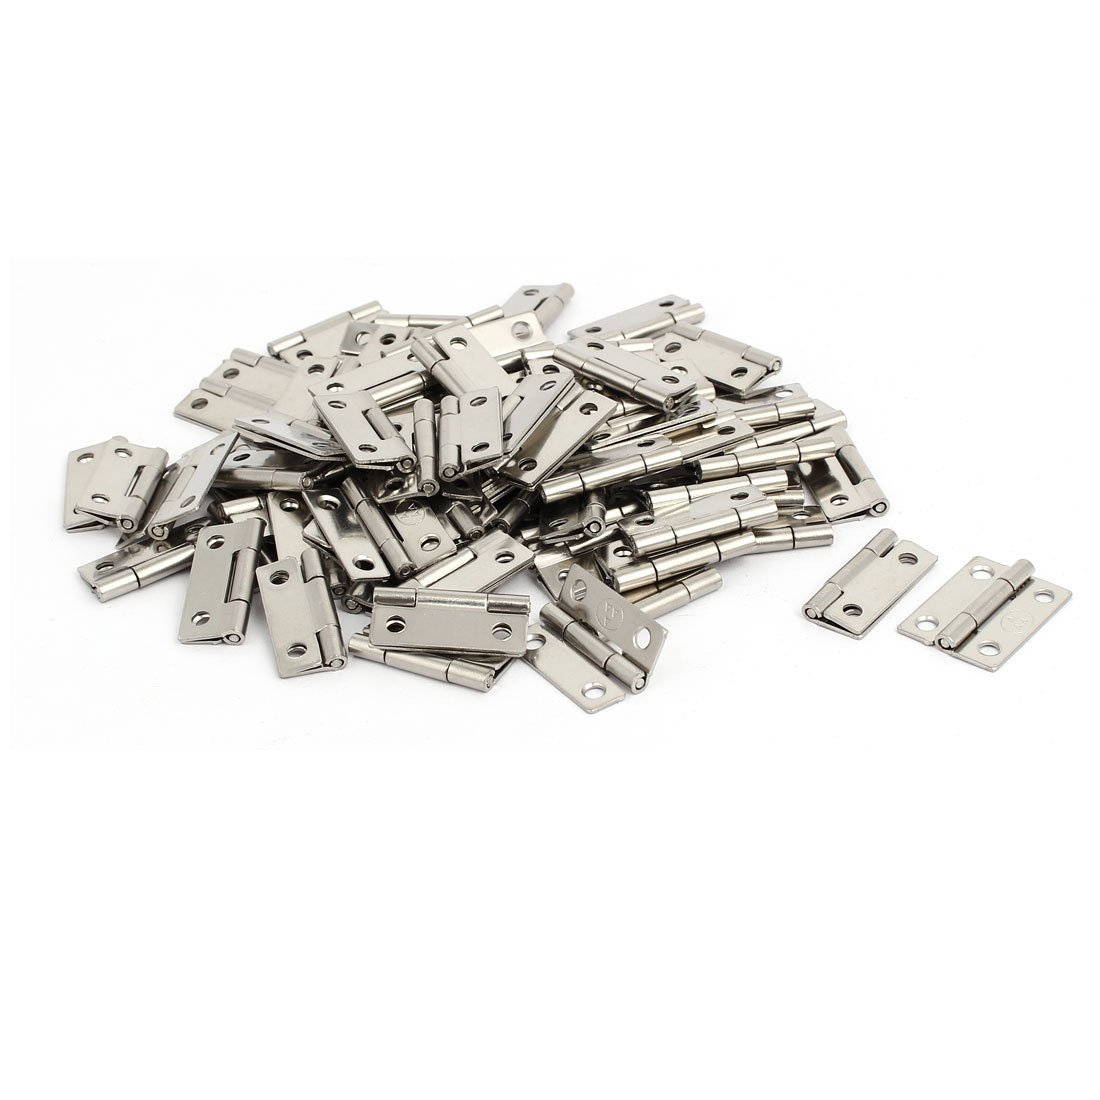 uxcell Jewelry Gift Box Case Stainless Steel Butt Hinges Silver Tone 1'' Length 100pcs